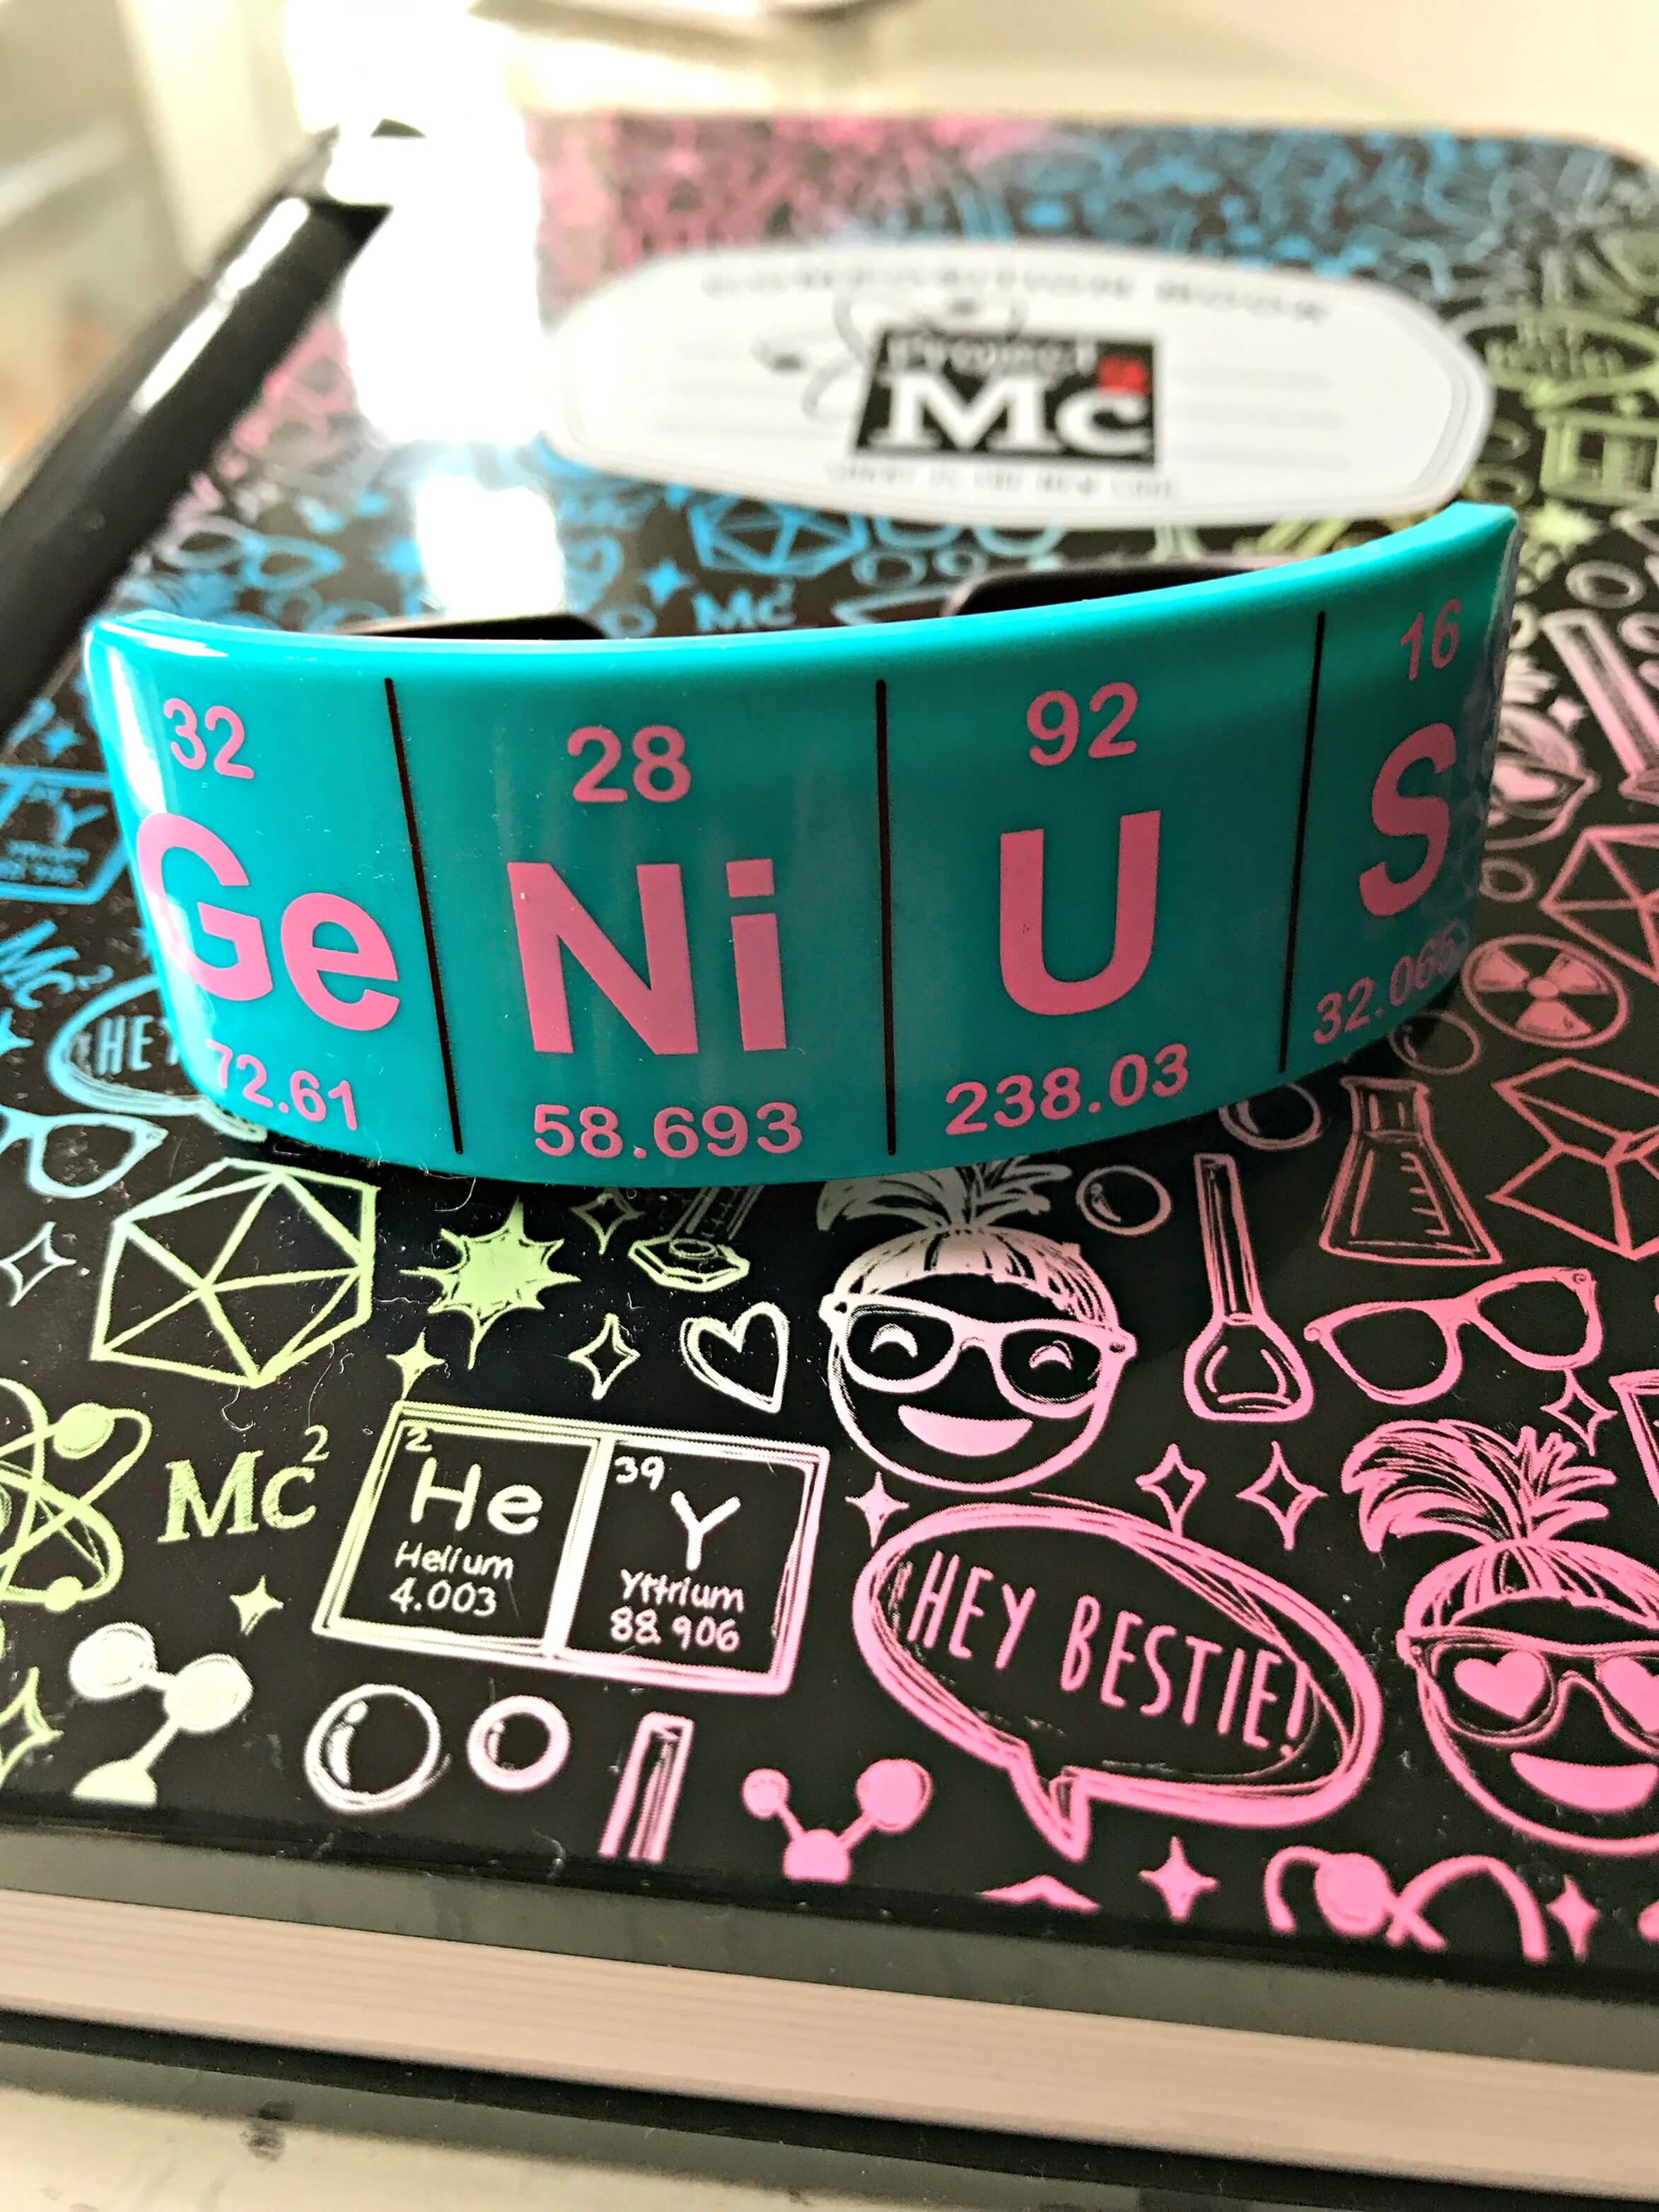 The Genius bracelet which unlocks the Project Mc2 A.D.I.S.N. Electronic Journal